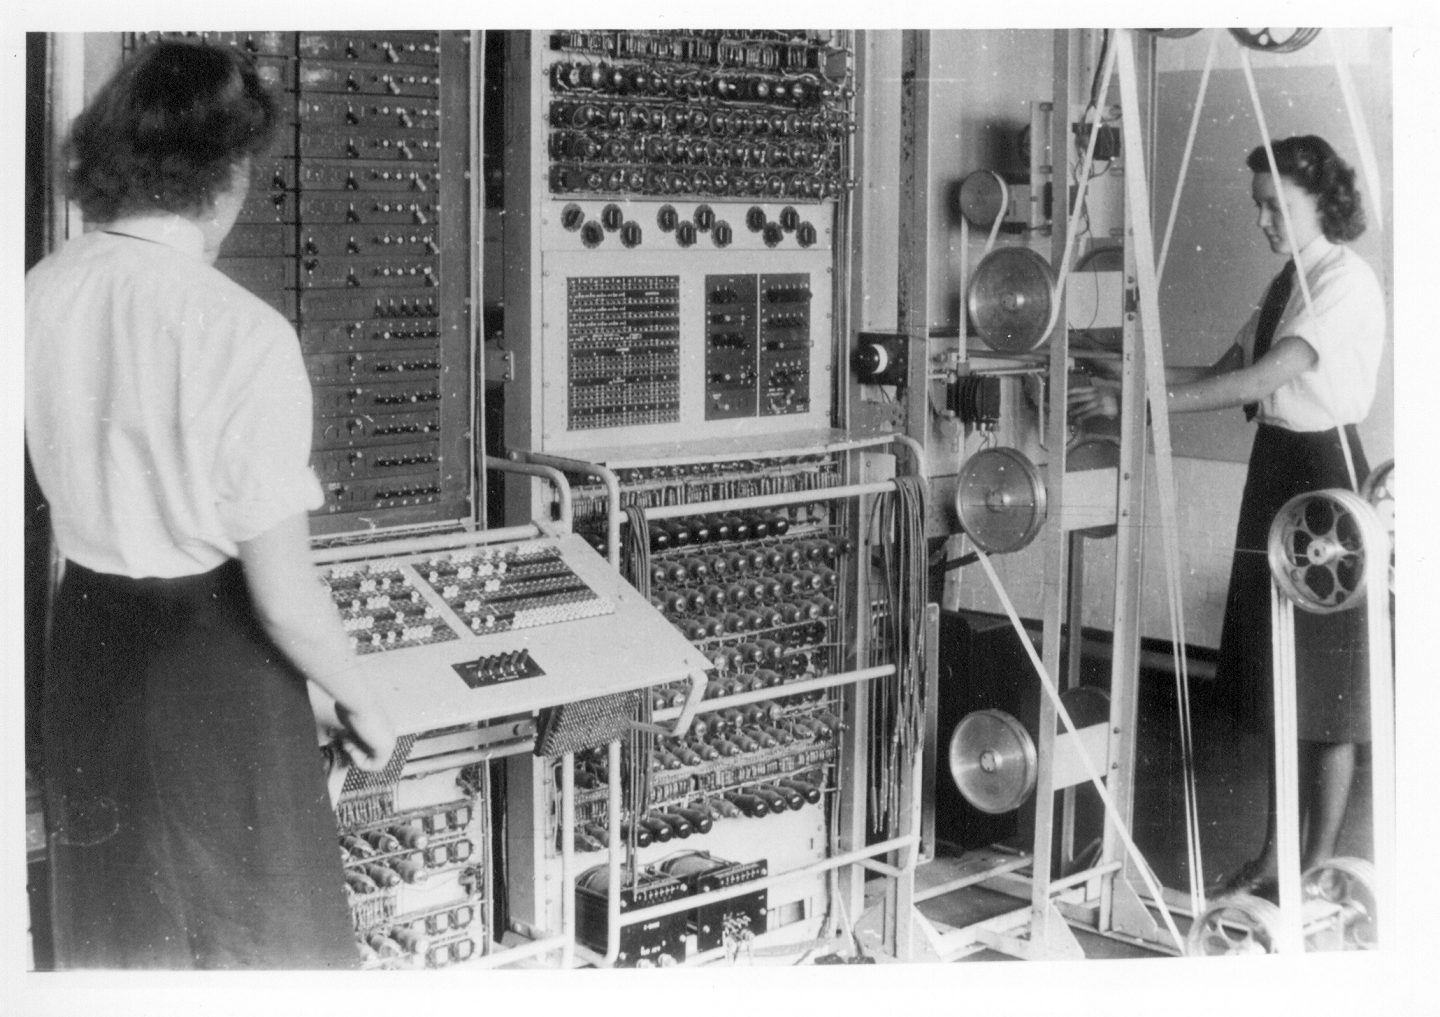 Special Event: Talk & Trip to Bletchley Park